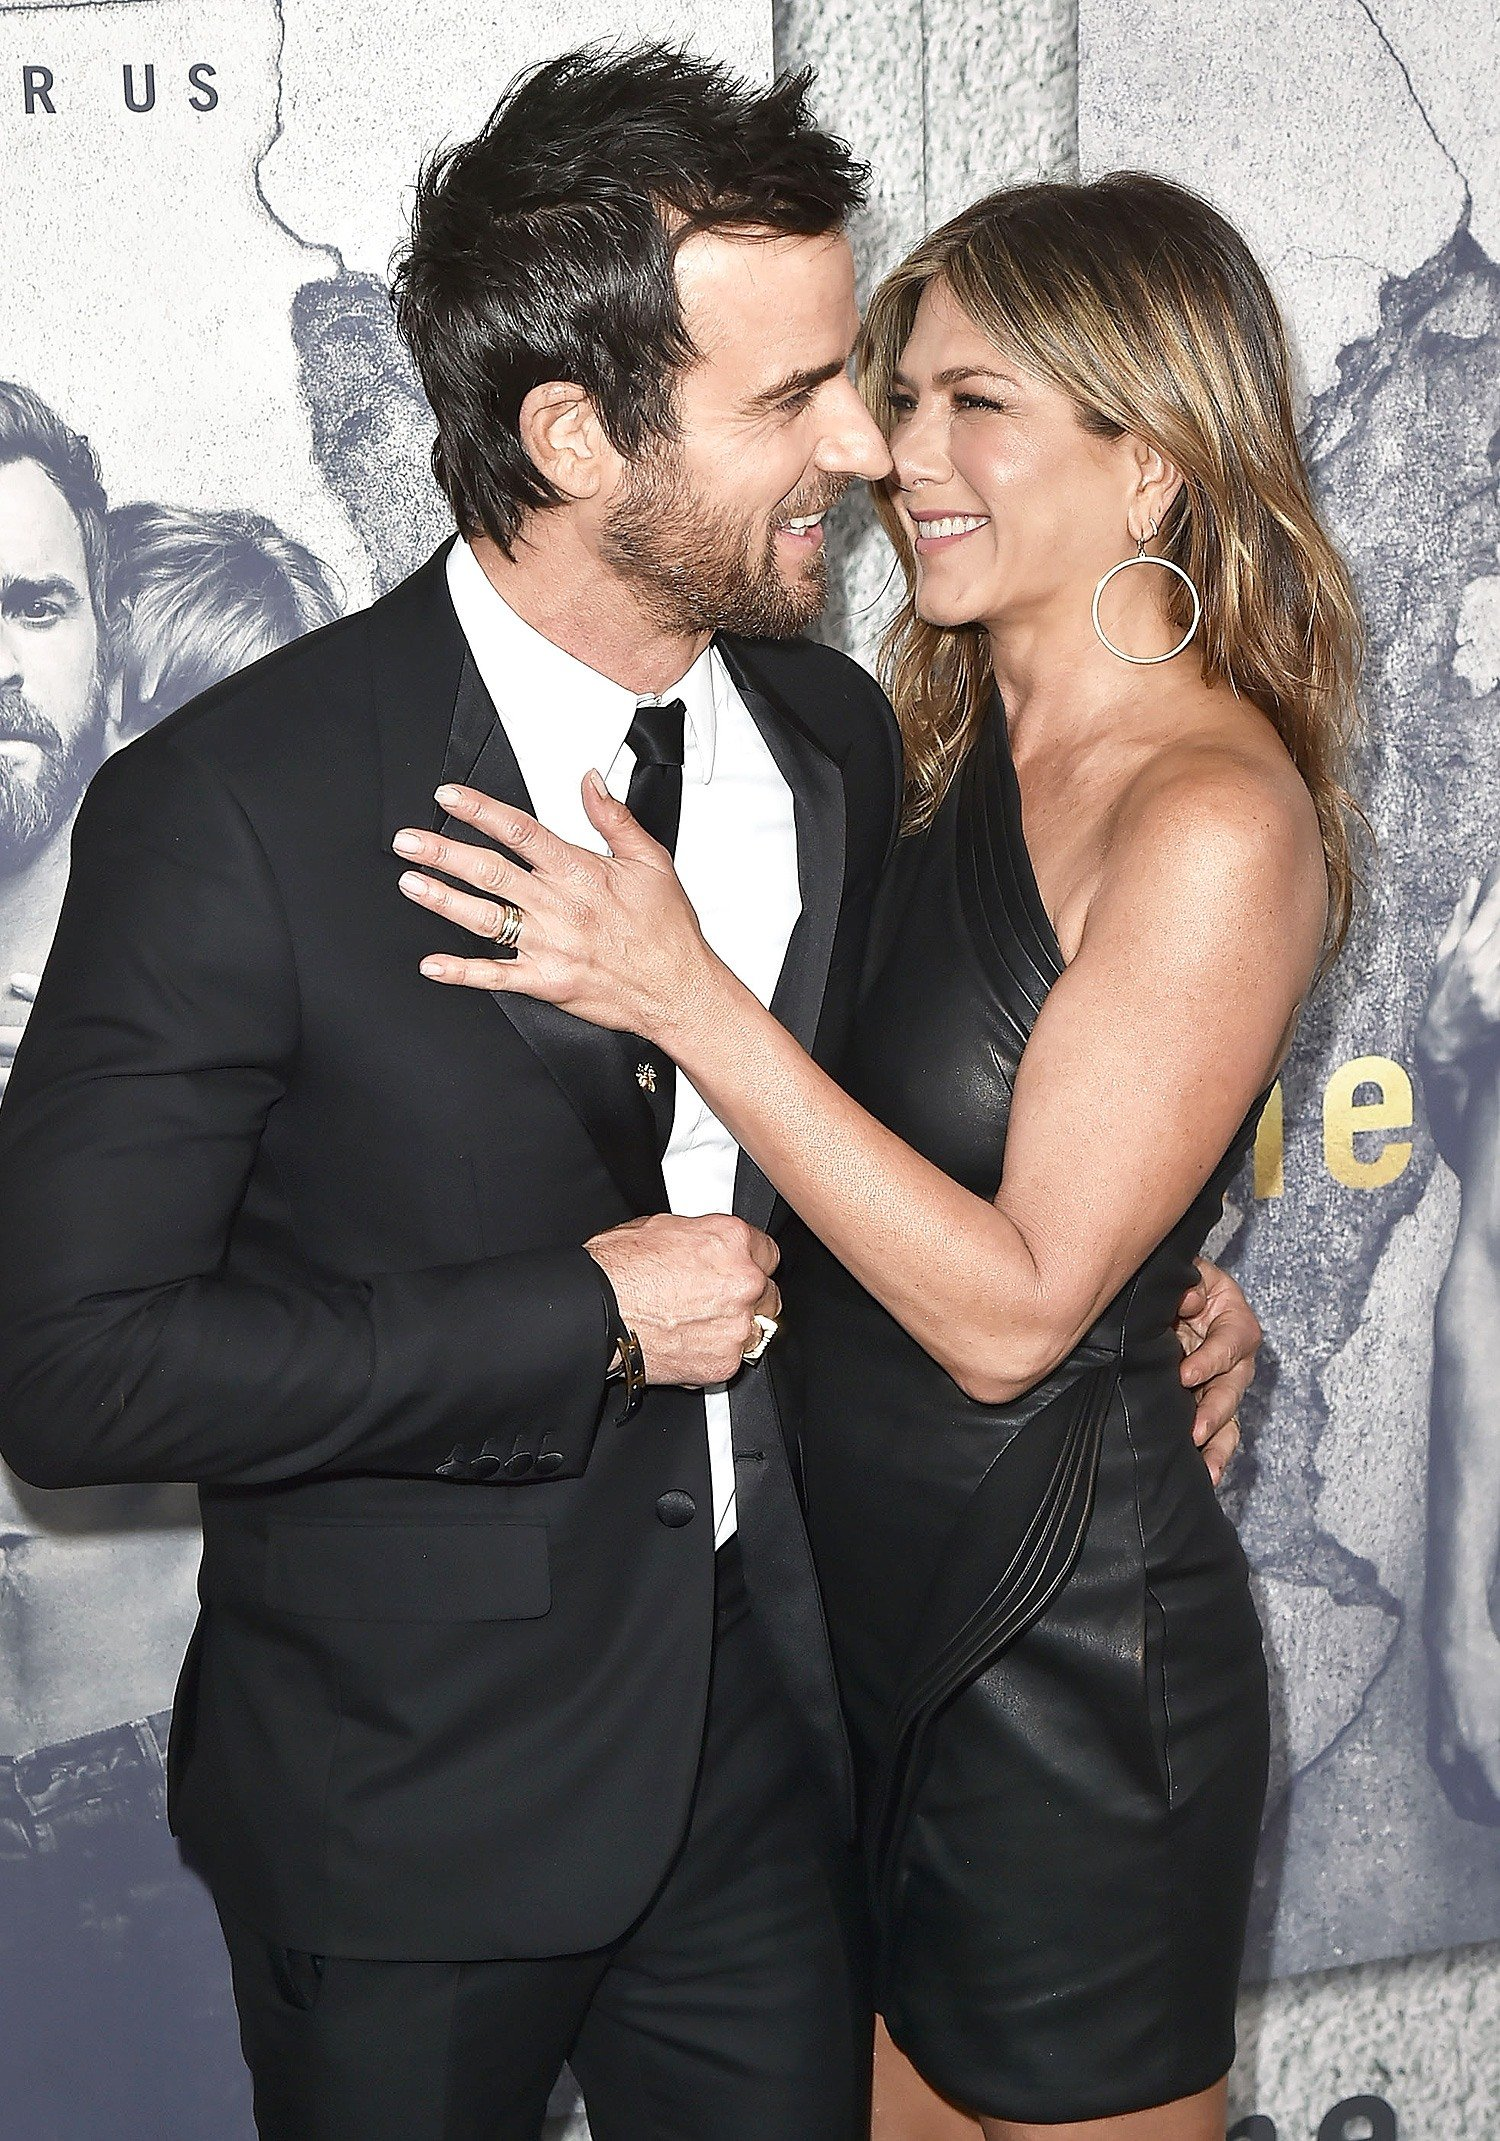 2 jen aniston and justin 1 20 Things You Never Knew About Jennifer Aniston